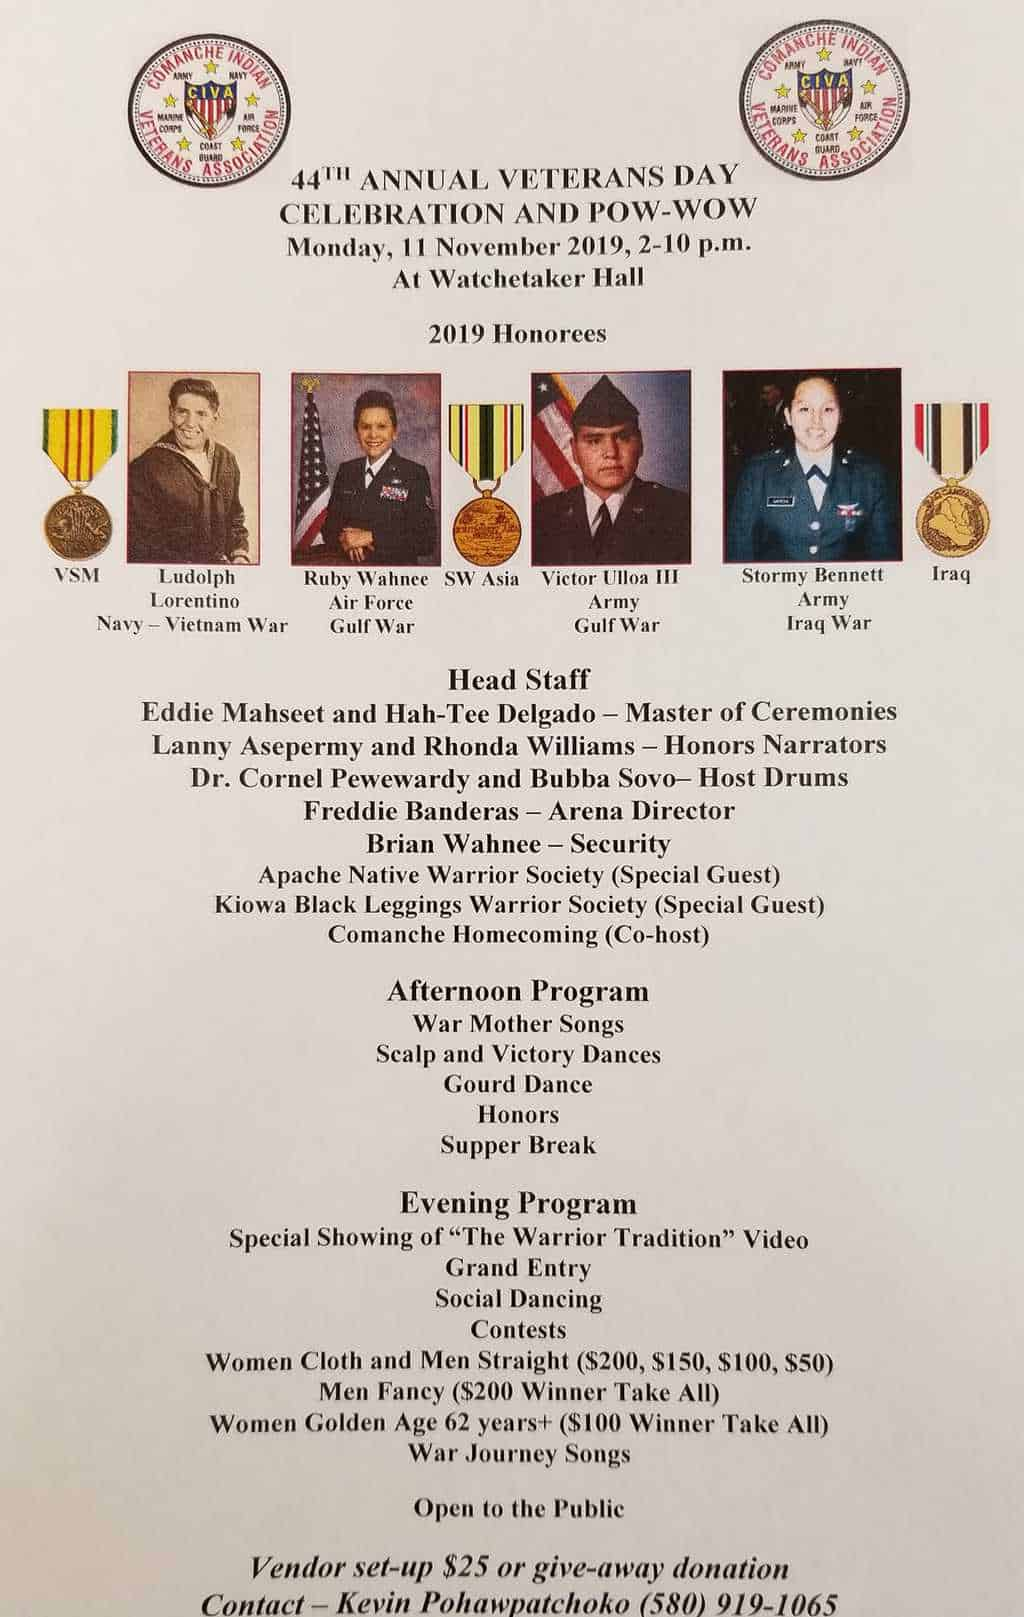 44th Annual Veterans Day Celebration and Pow-Wow